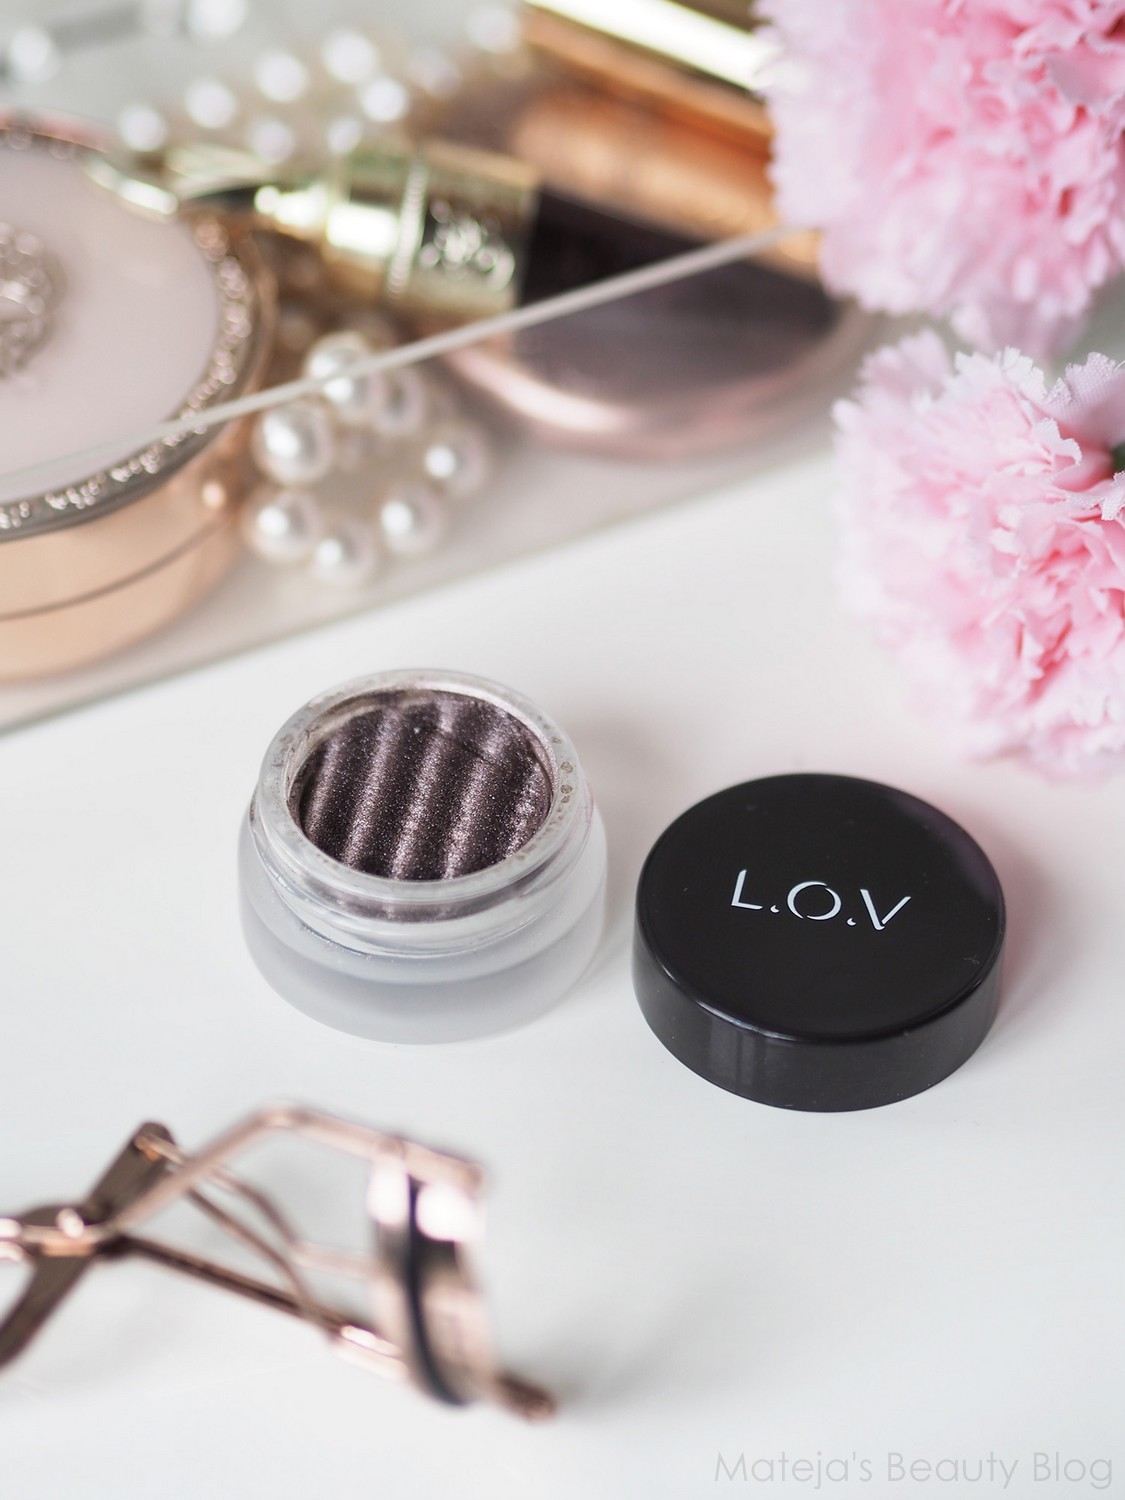 L.O.V. EYEttraction Magnetic Loose Eyeshadow